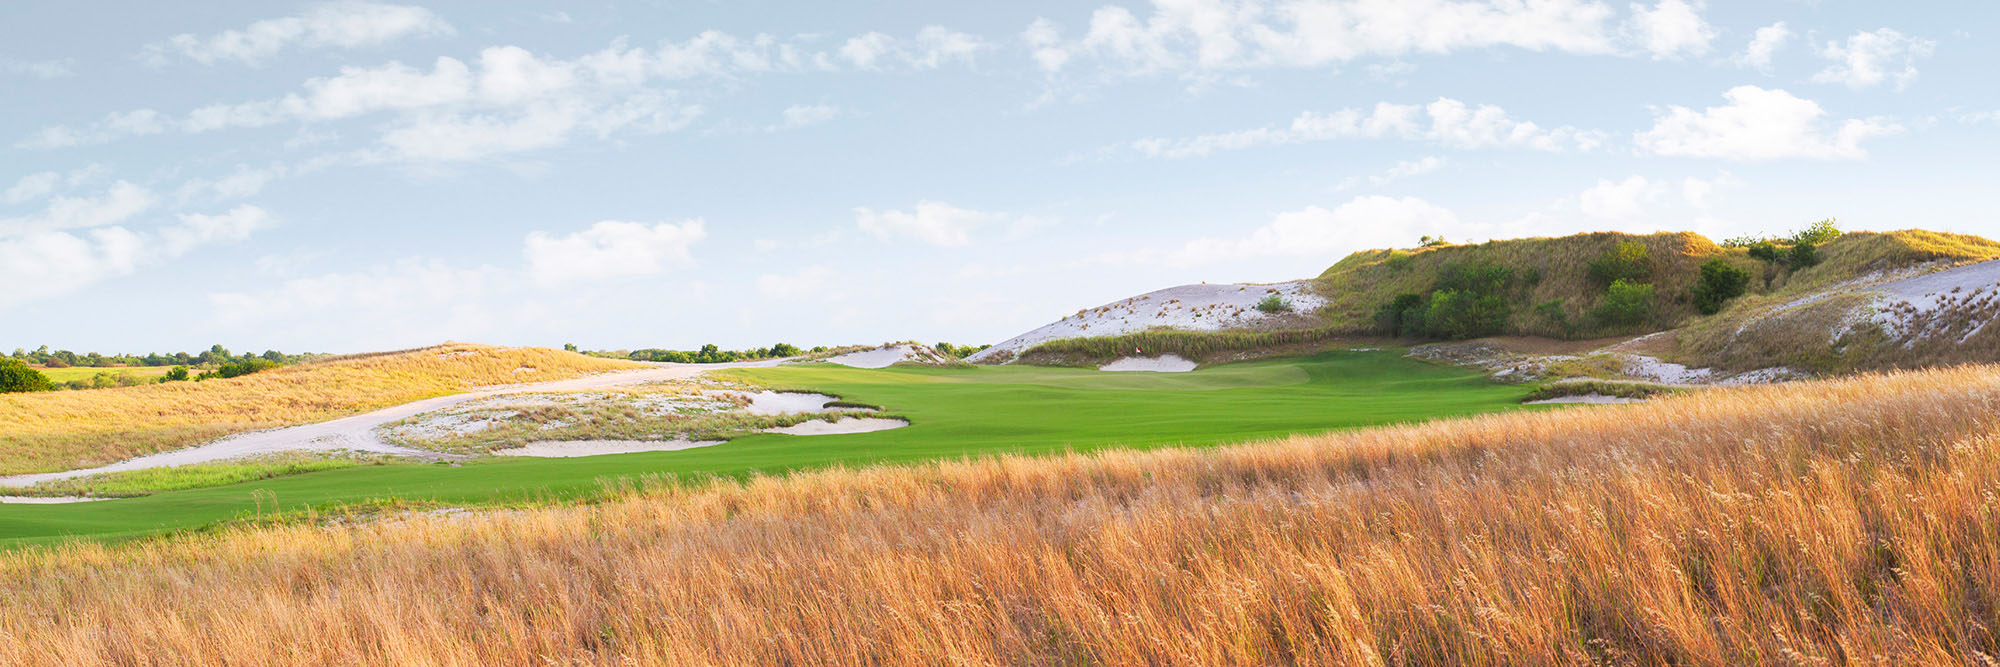 Golf Course Image - Streamsong Red No. 18